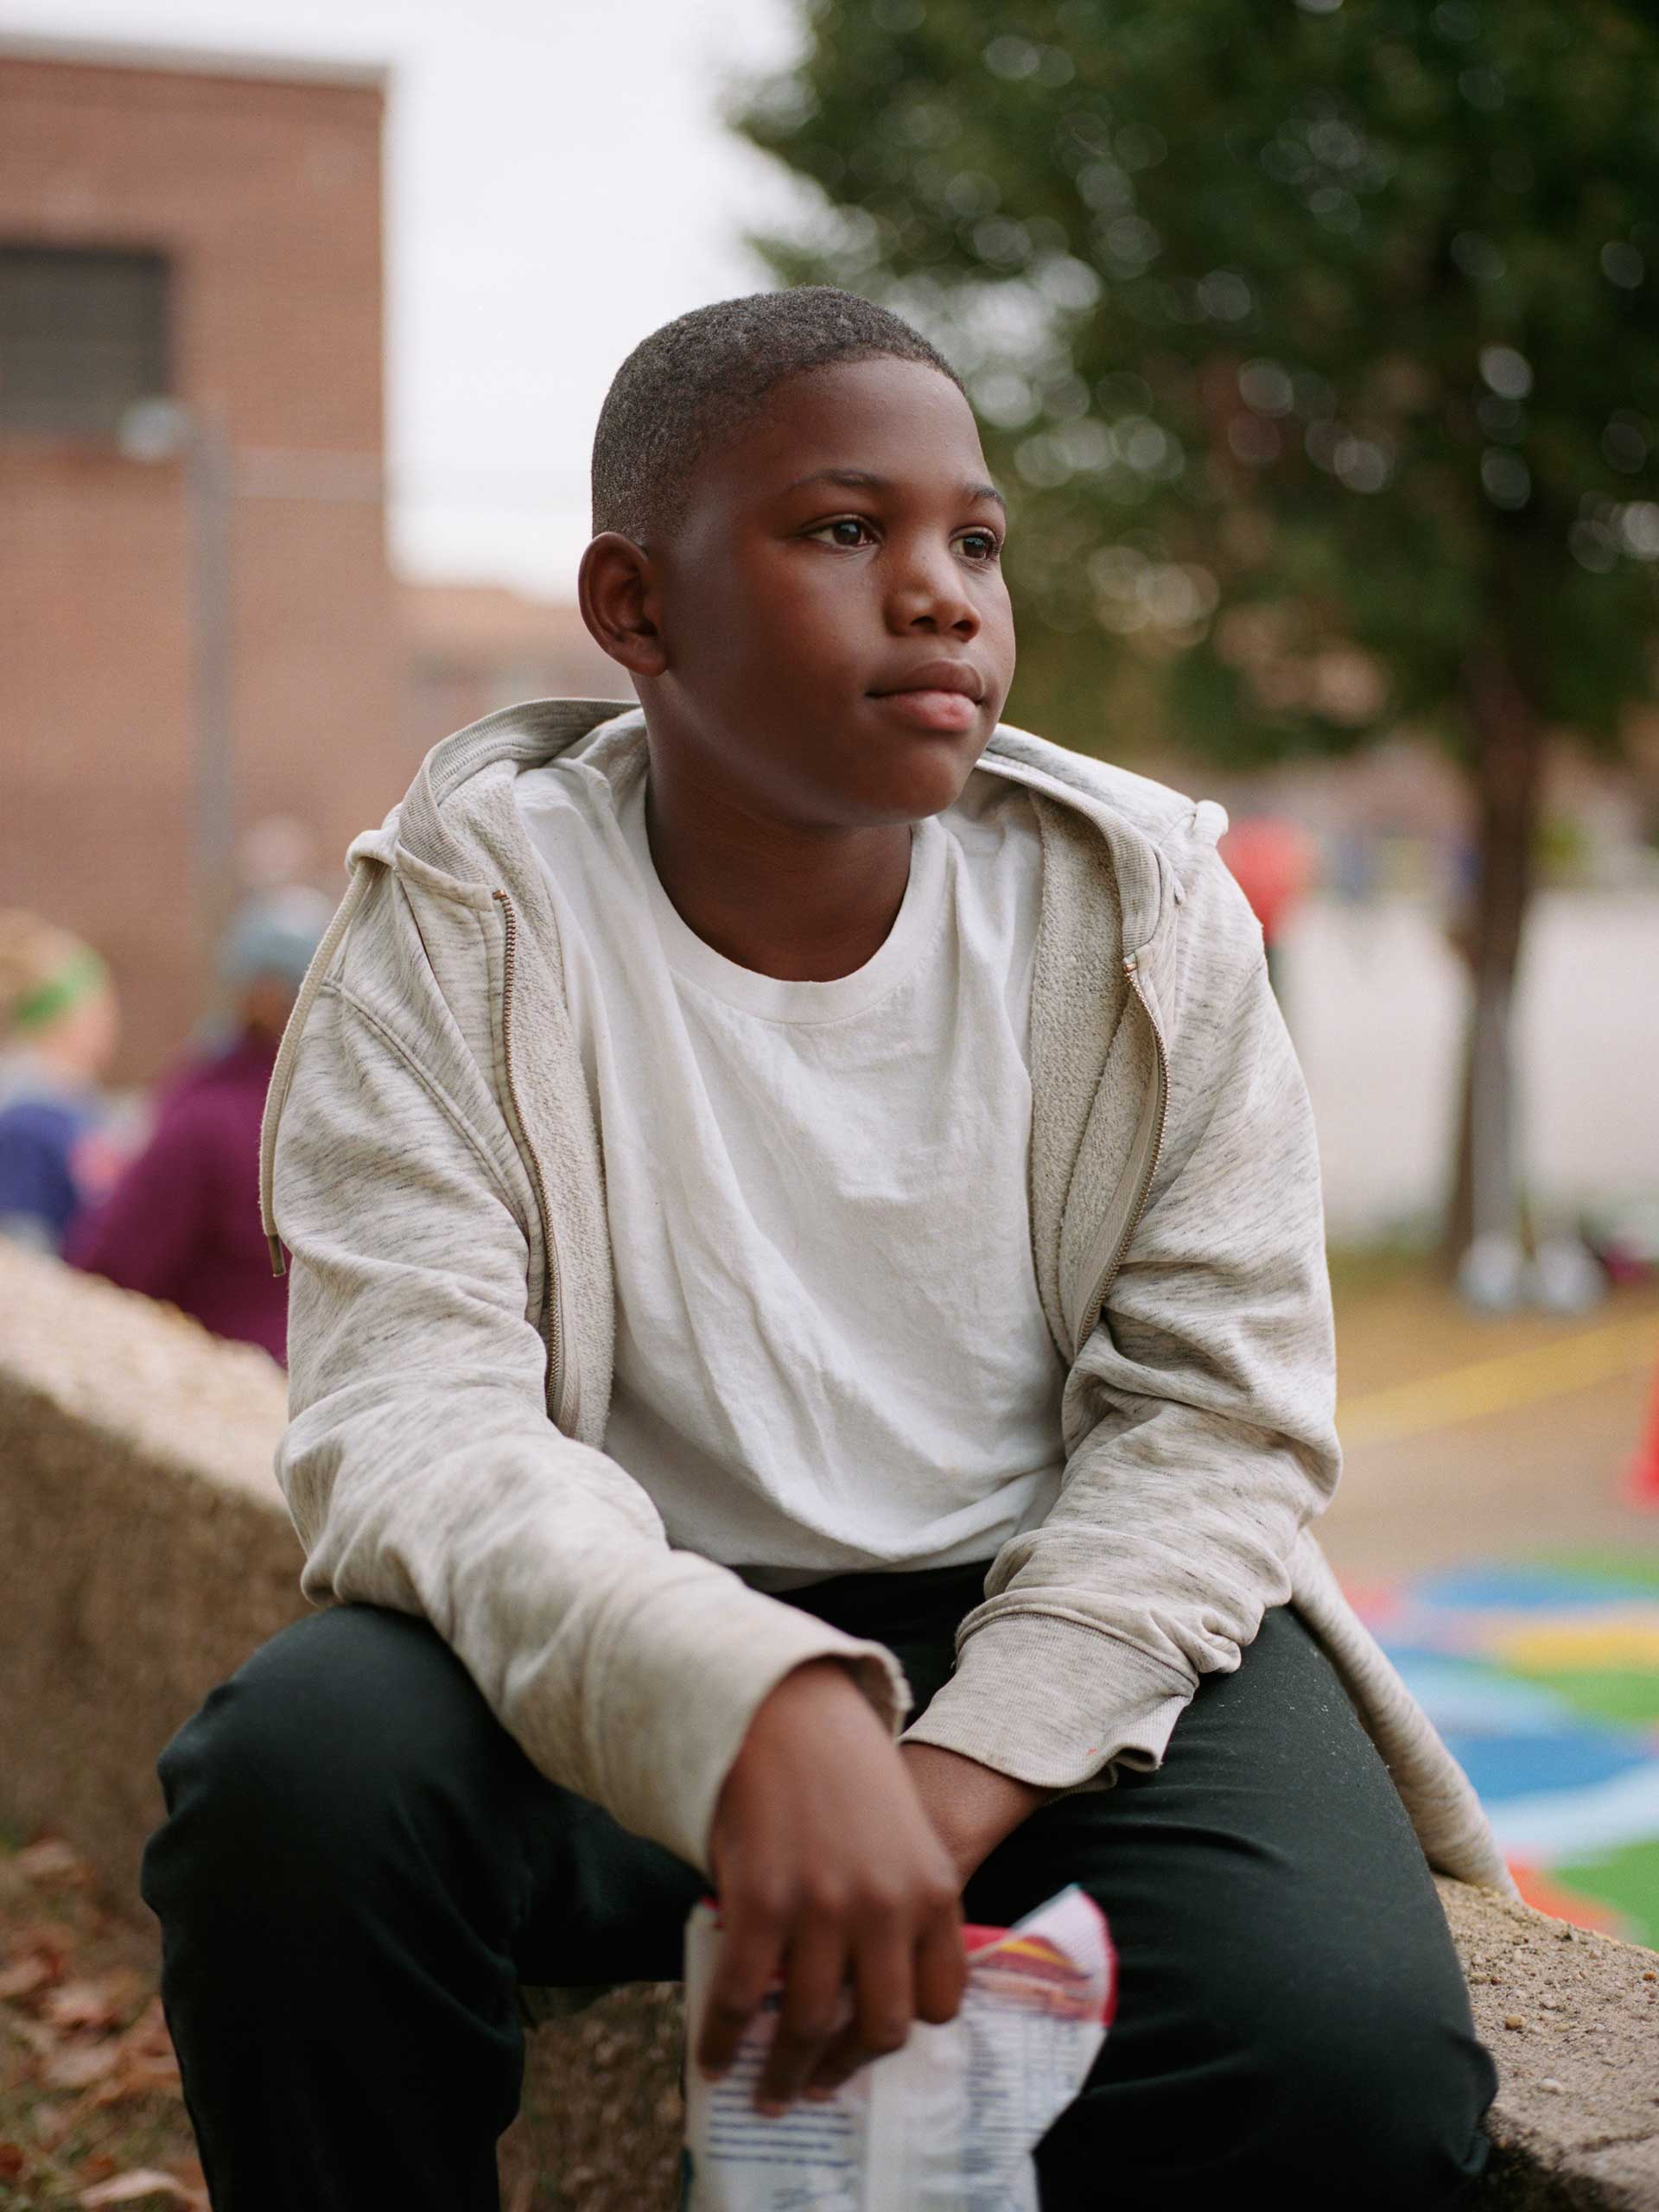 """Donnell Rochester, 12, hanging out in the playground at Gilmor Elementary School in Sandtown where he attended school. He currently lives in the Gilmor Homes housing project with his family, but they plan to leave Sandtown. """"I'm happy I'm getting out of here. We're basically moving to Hartford County. Everything is working out as planned. Gilmor Projects is something else. Gilmor Projects, they do anything in Gilmor Projects, it's a lot of shootings, it's a lot of killings. It's just everything. Basically a child wouldn't want to grow up in Gilmor. I know I didn't."""""""